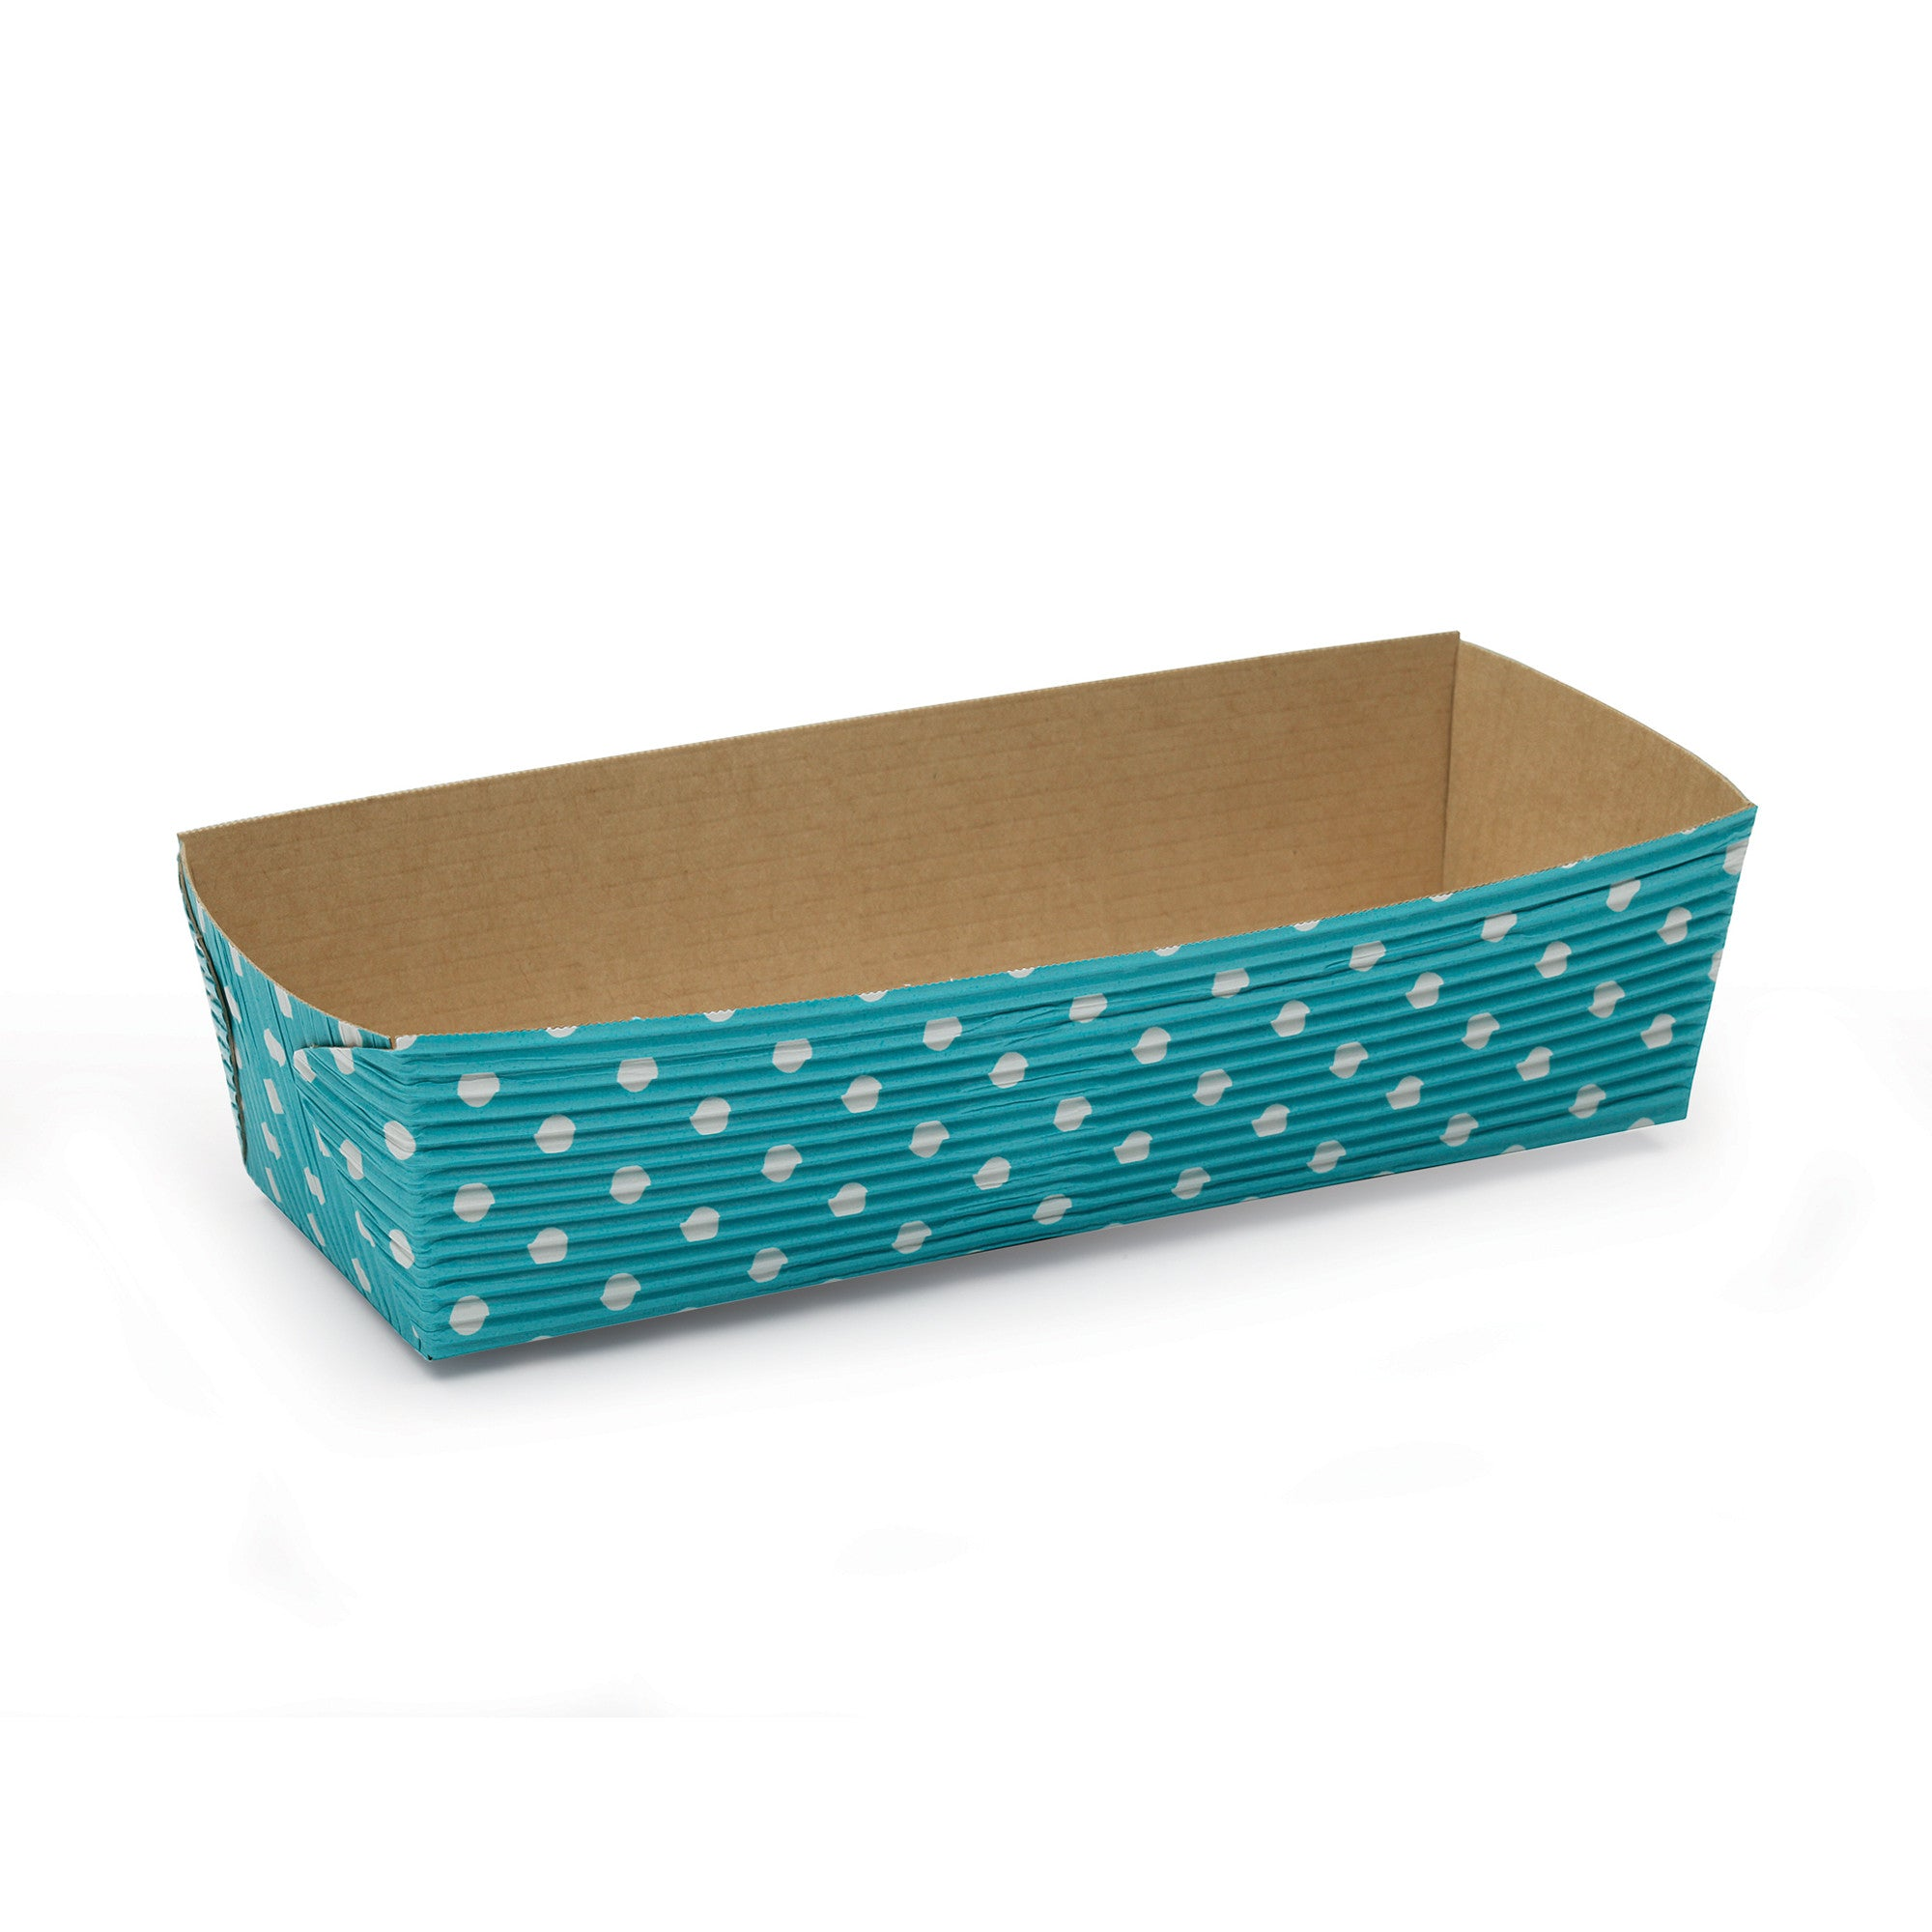 Rectangular Loaf Baking Pans, Turquoise Dot - Paper Bake Shop